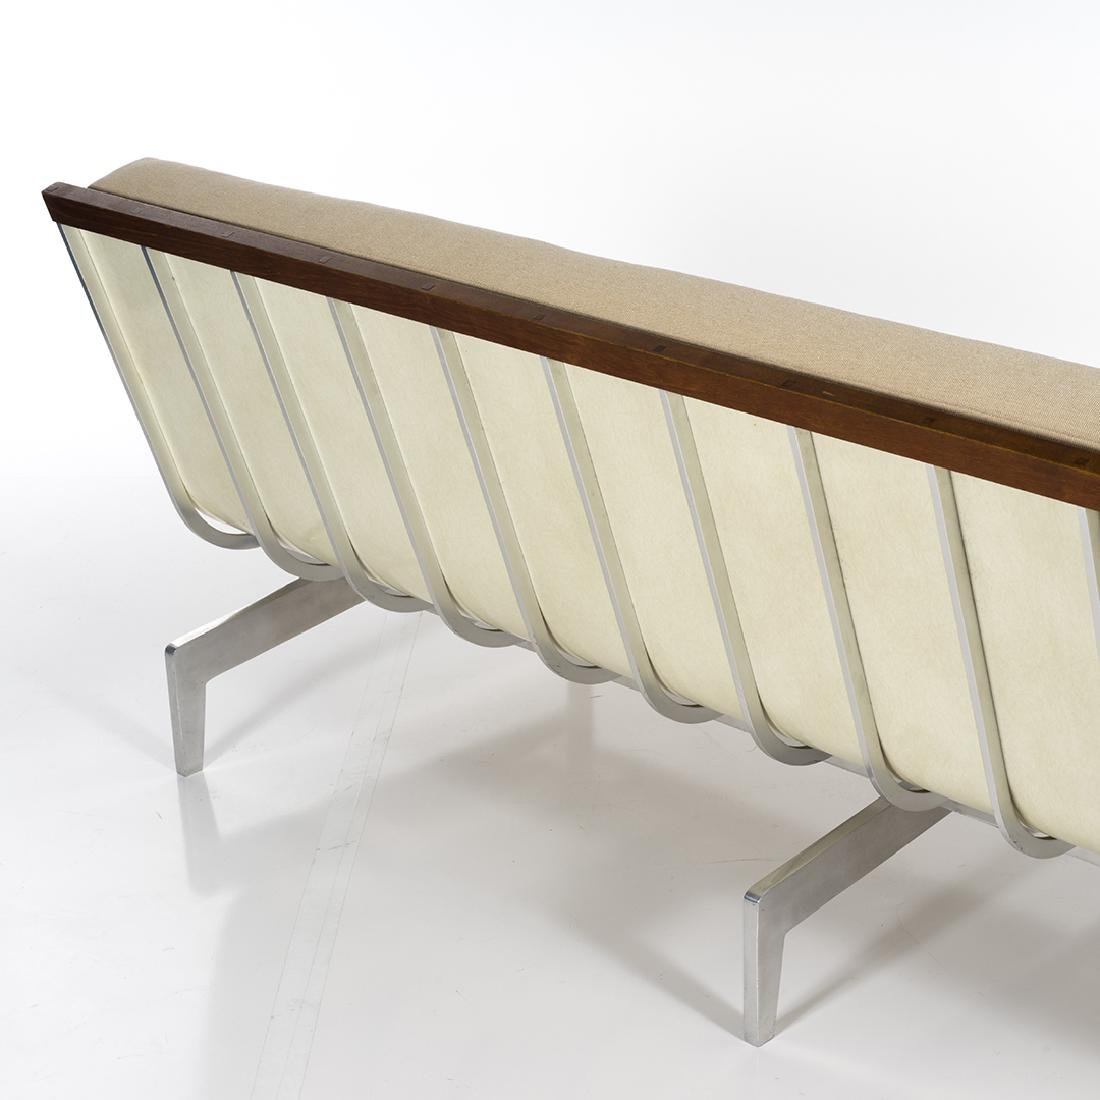 Lee DeSell Architectural Sofa - 5